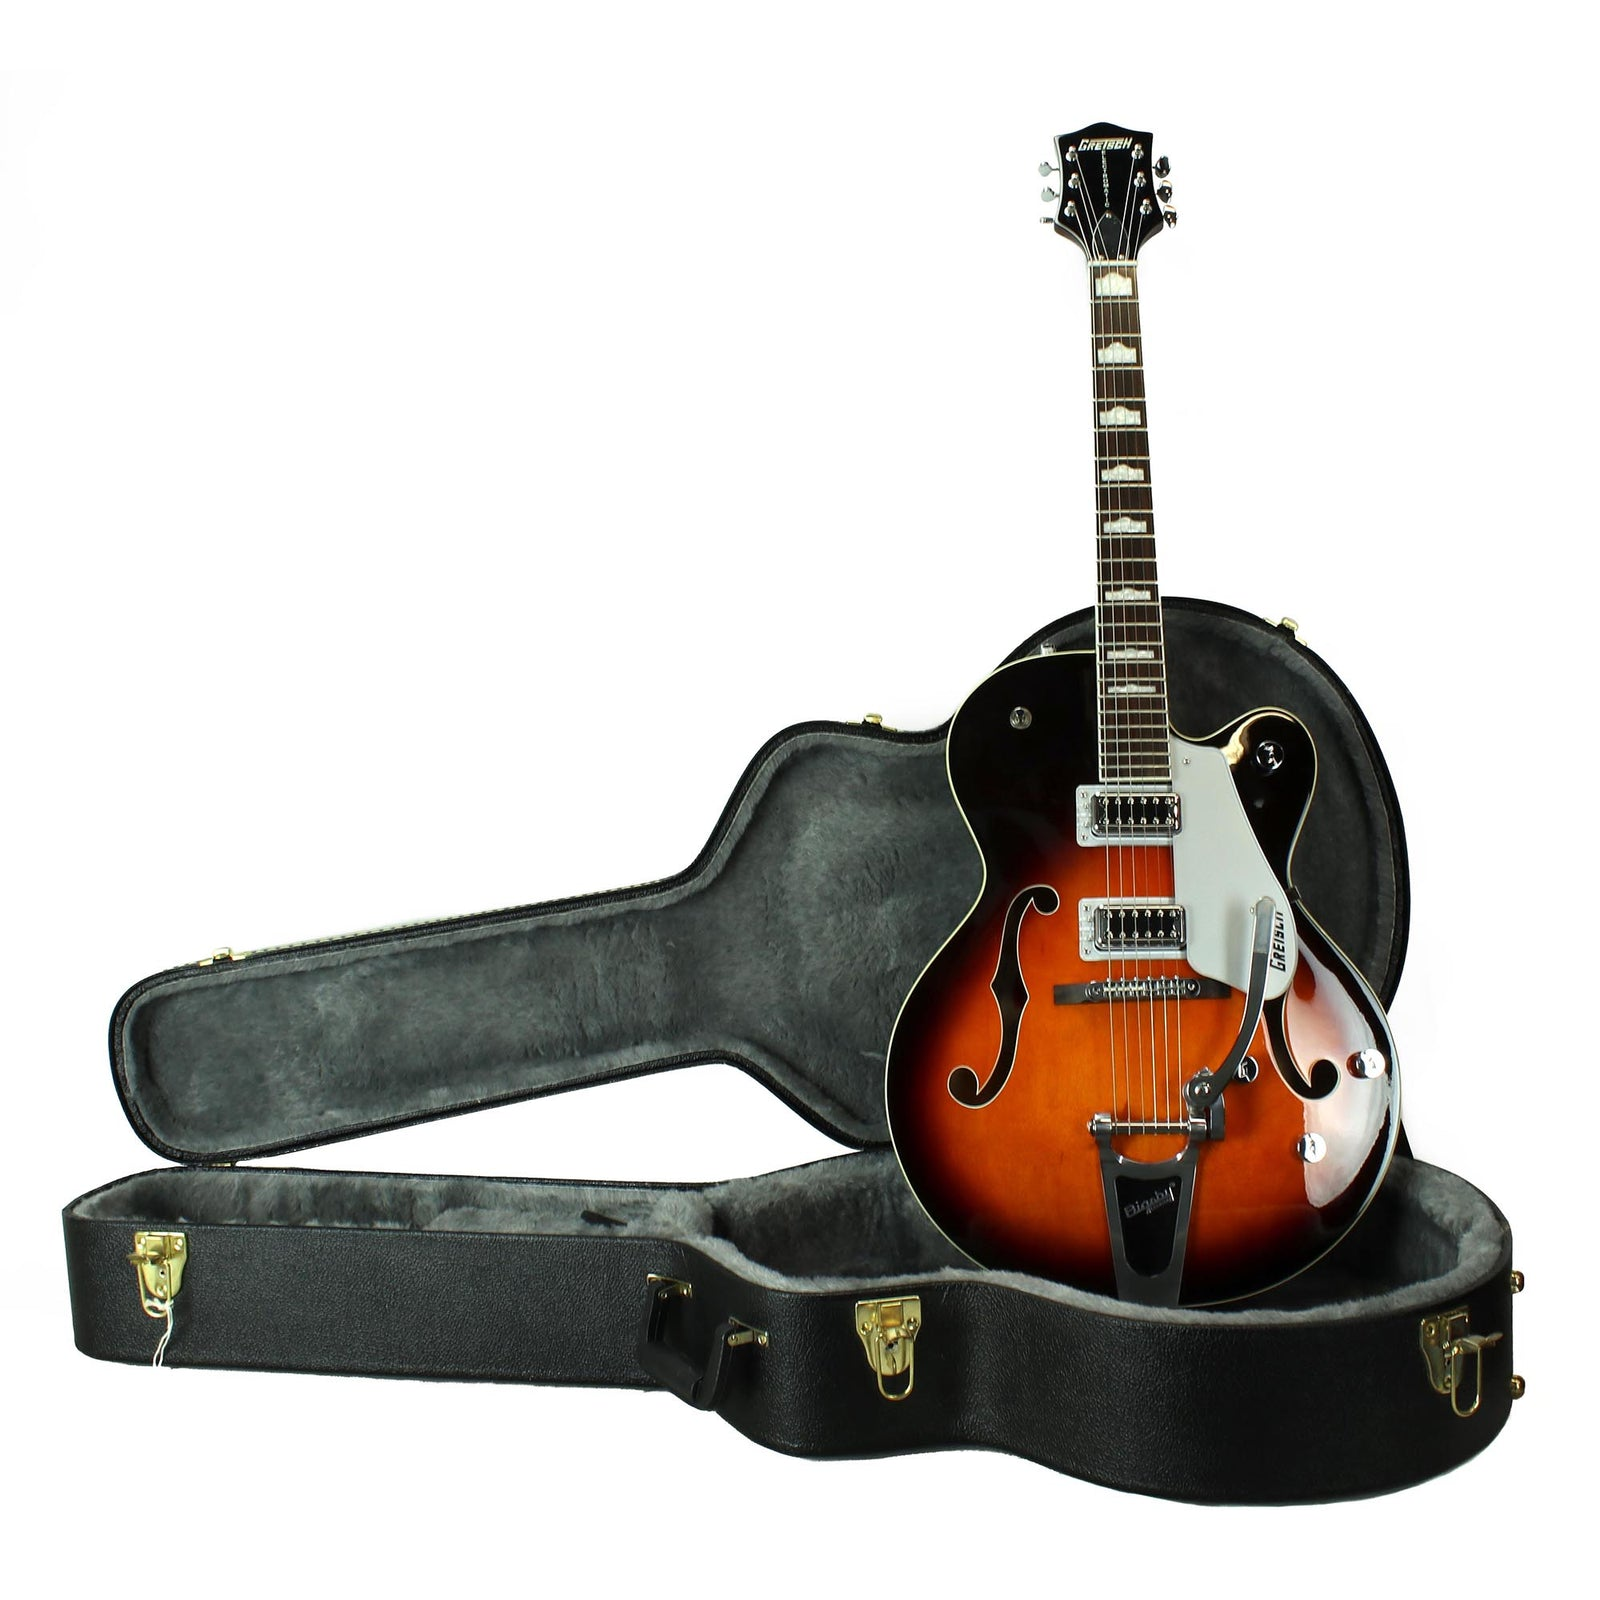 Gretsch G5420T - Tobacco Burst With Case - Used